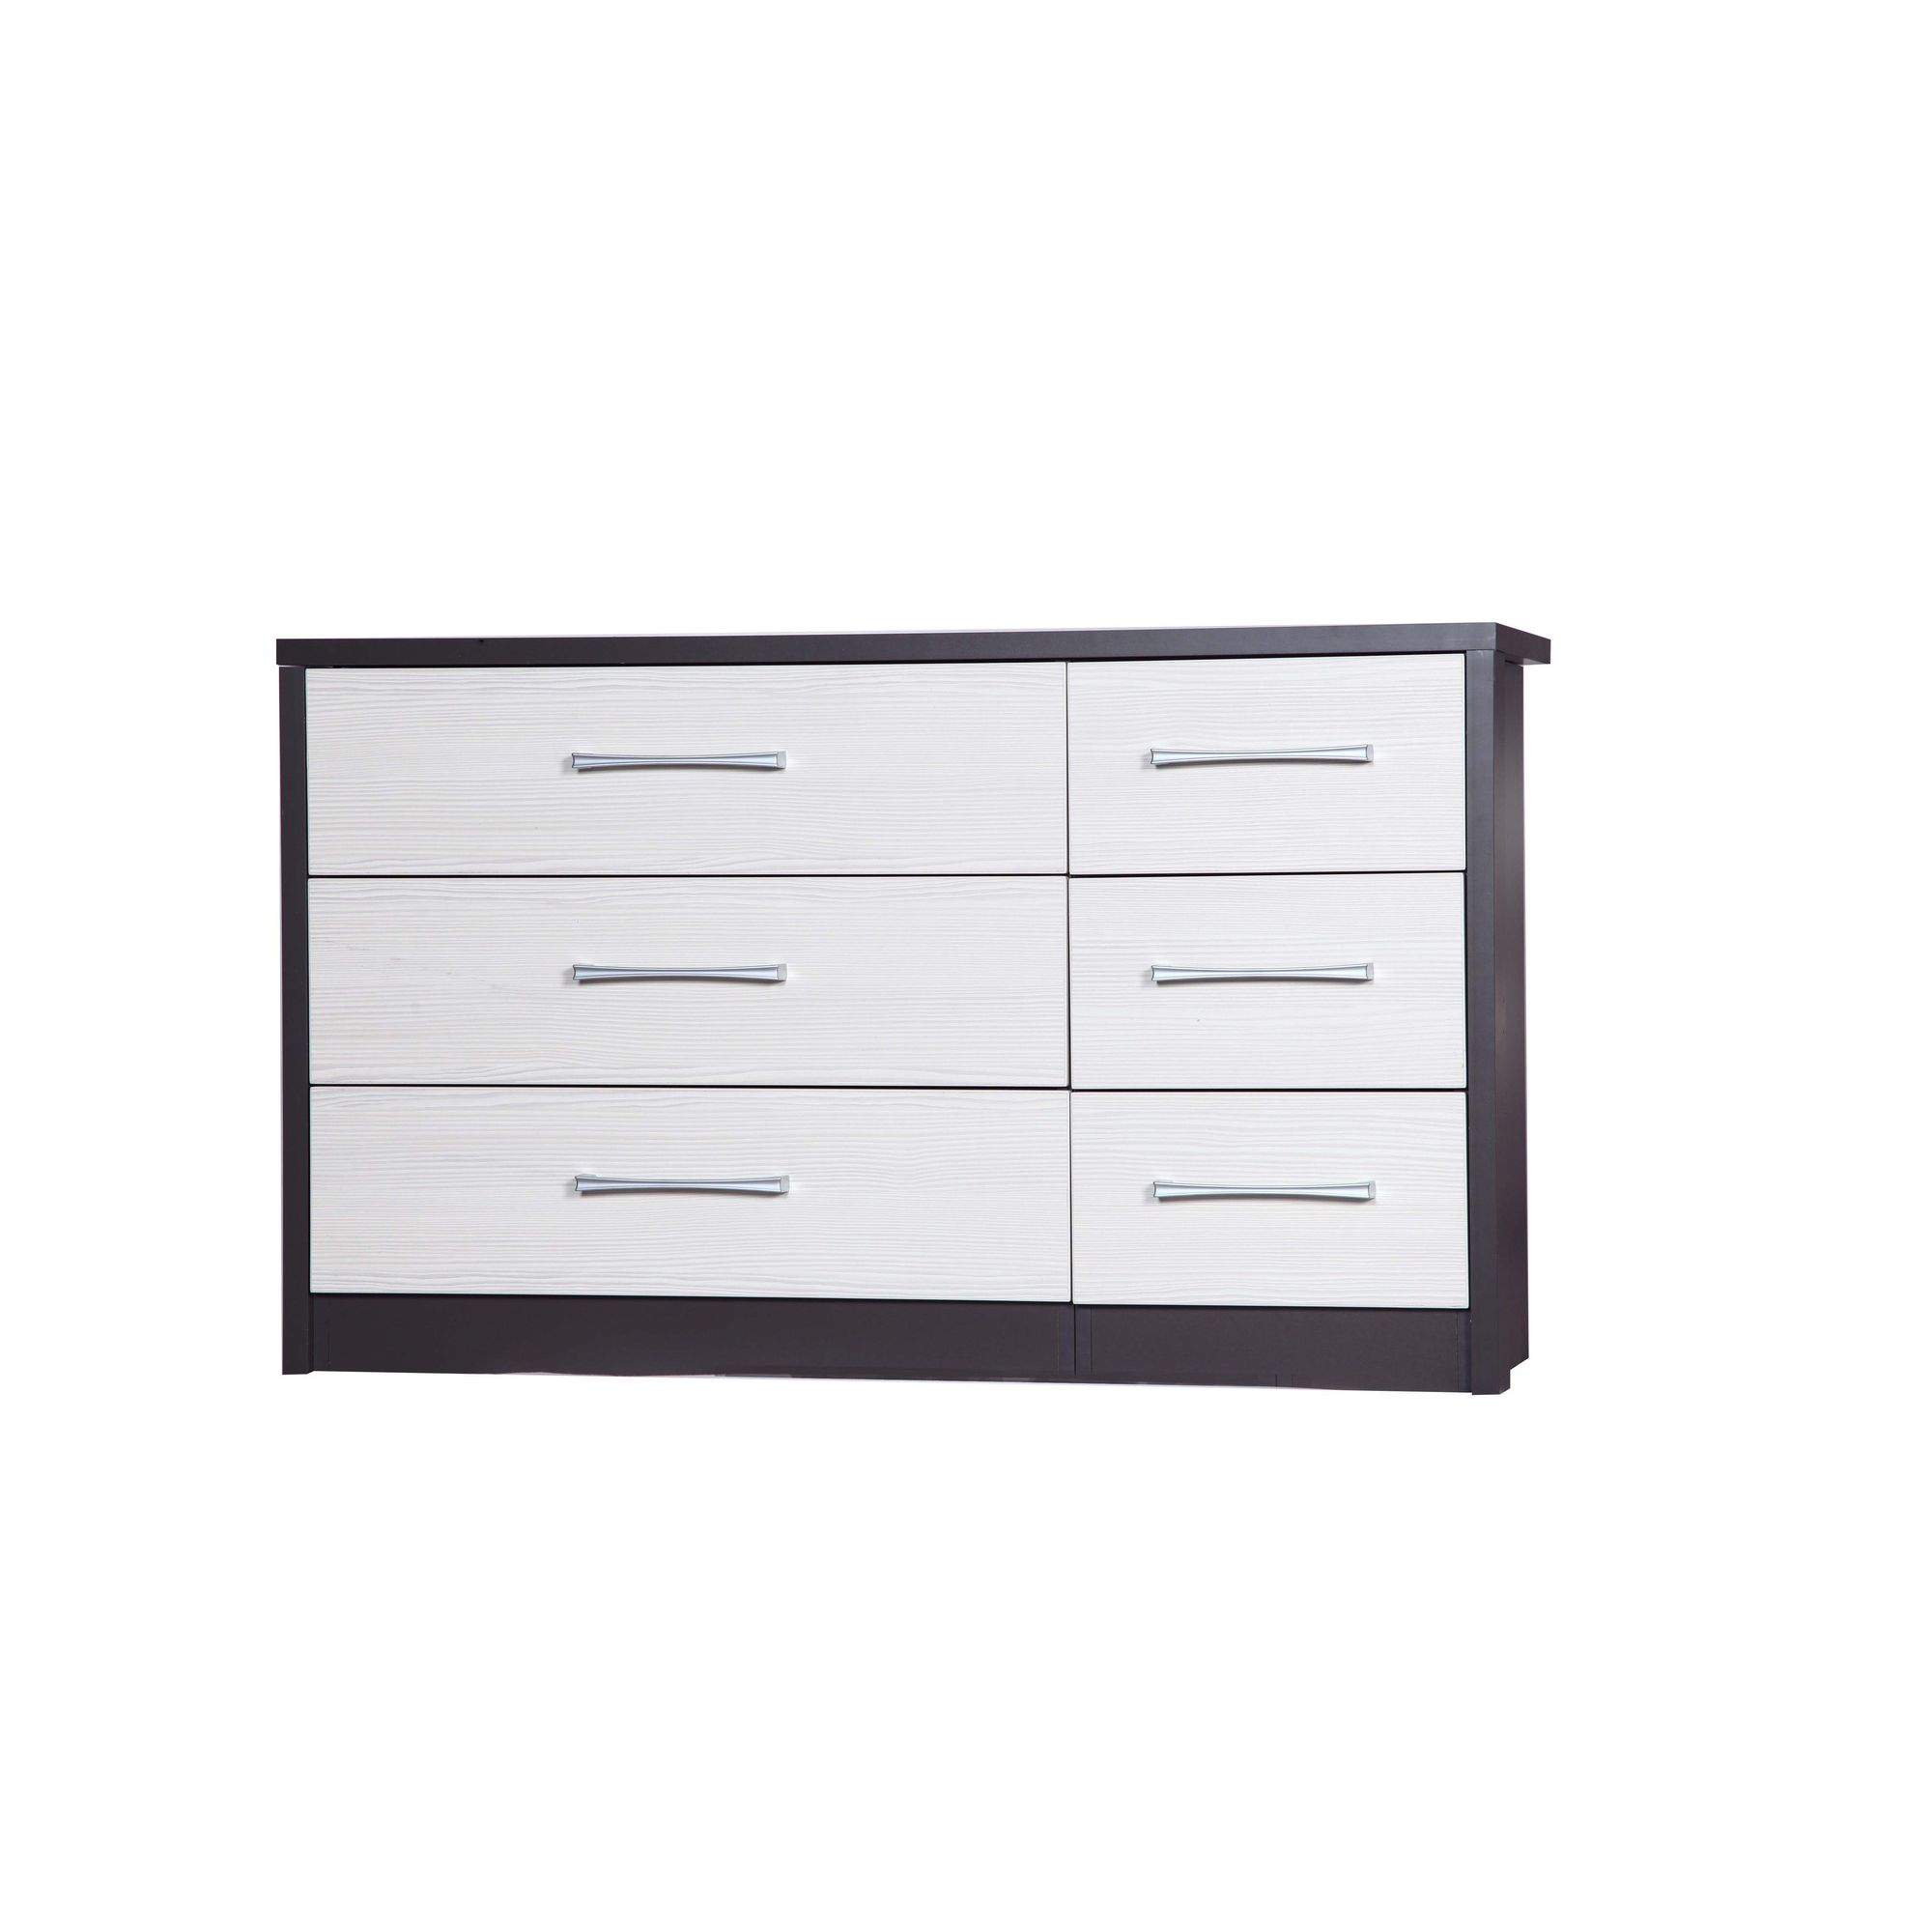 Alto Furniture Avola 6 Drawer Double Chest - Grey Carcass With White Avola at Tesco Direct